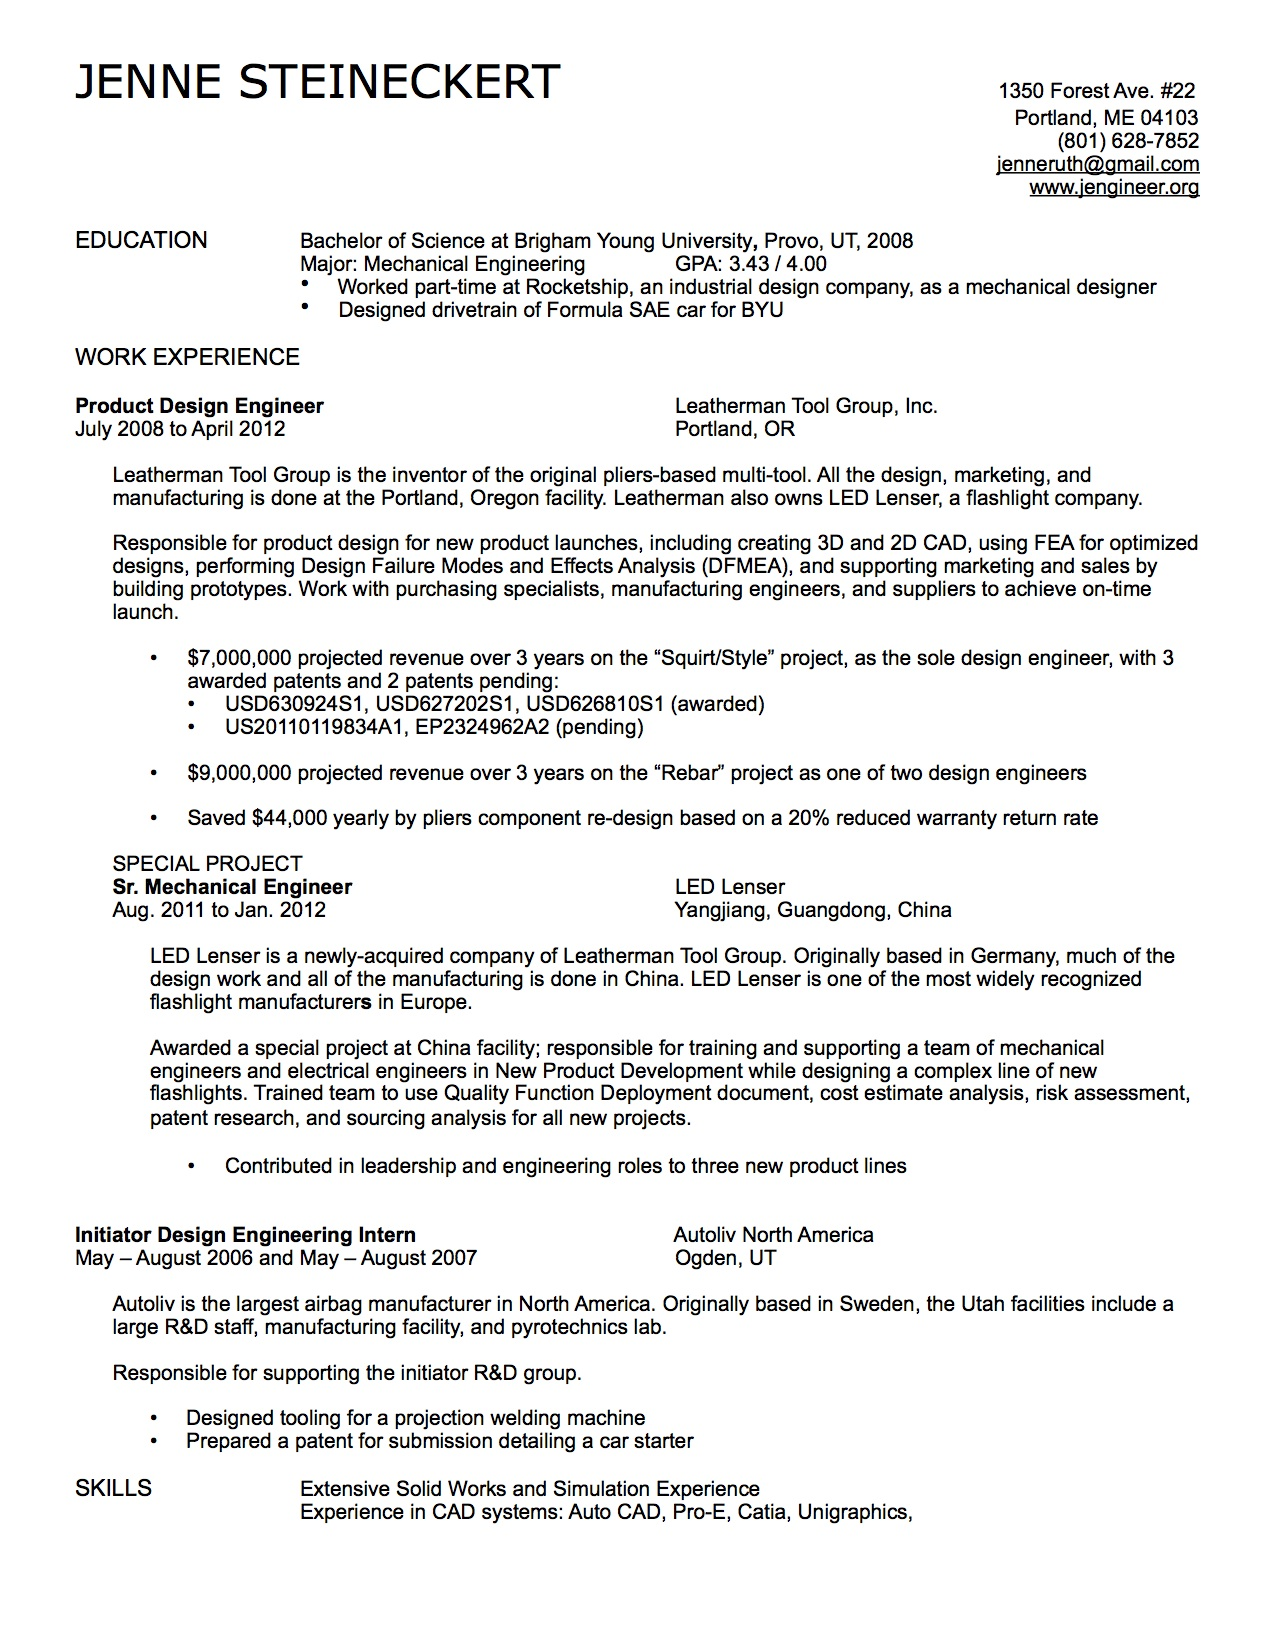 best resume title for engineer coverletter for job education best resume title for engineer resume designs best creative resume design infographics some good hobbies for